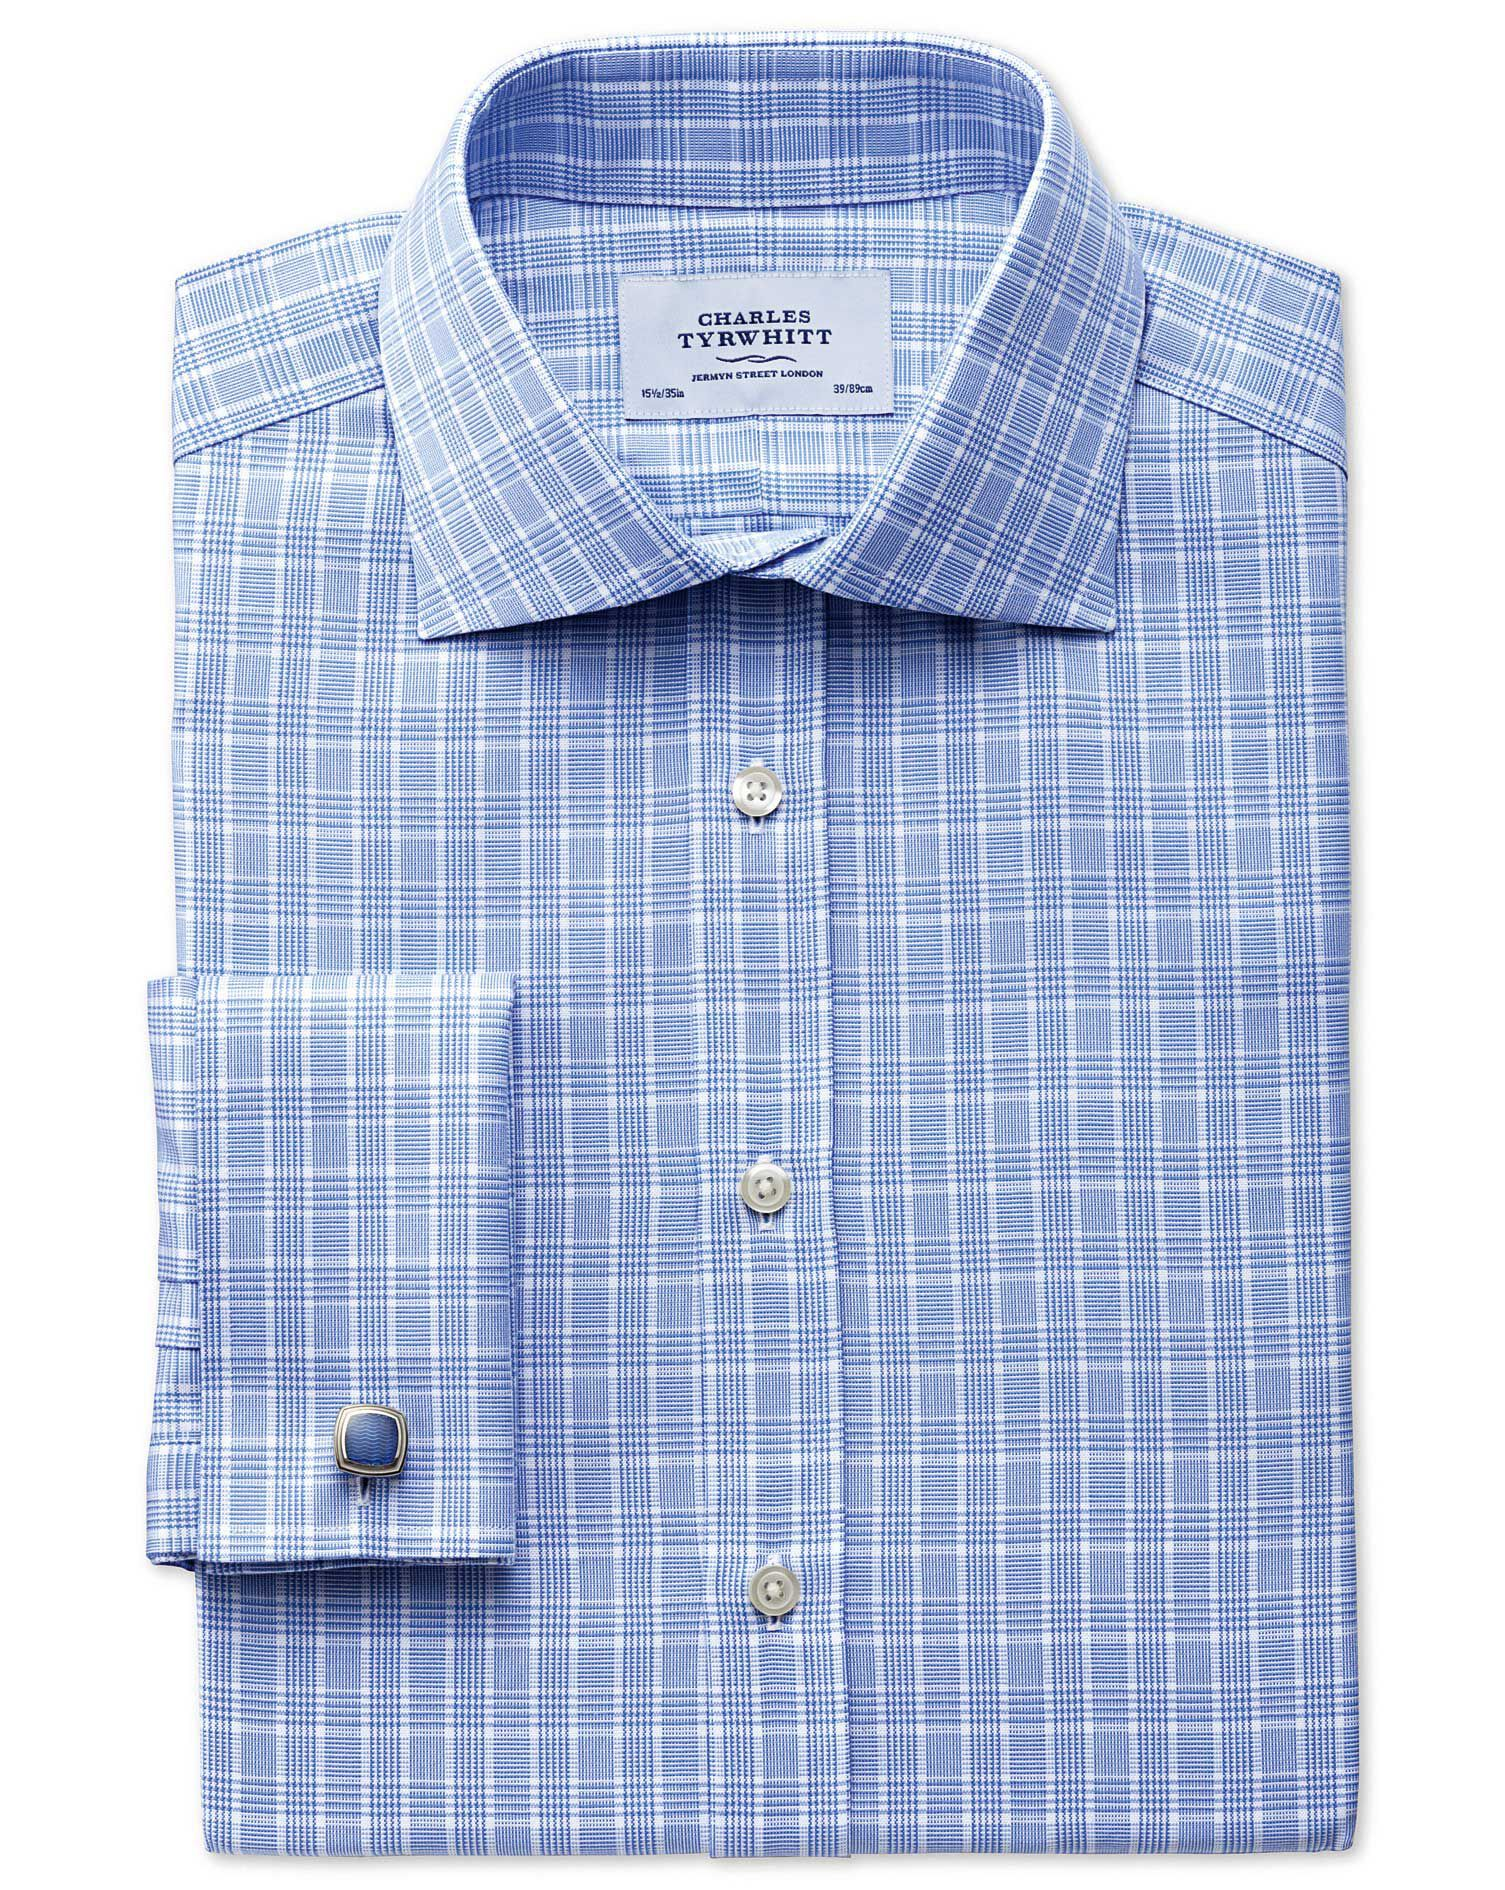 Classic Fit Prince Of Wales Basketweave Sky Blue Cotton Formal Shirt Double Cuff Size 15.5/37 by Cha